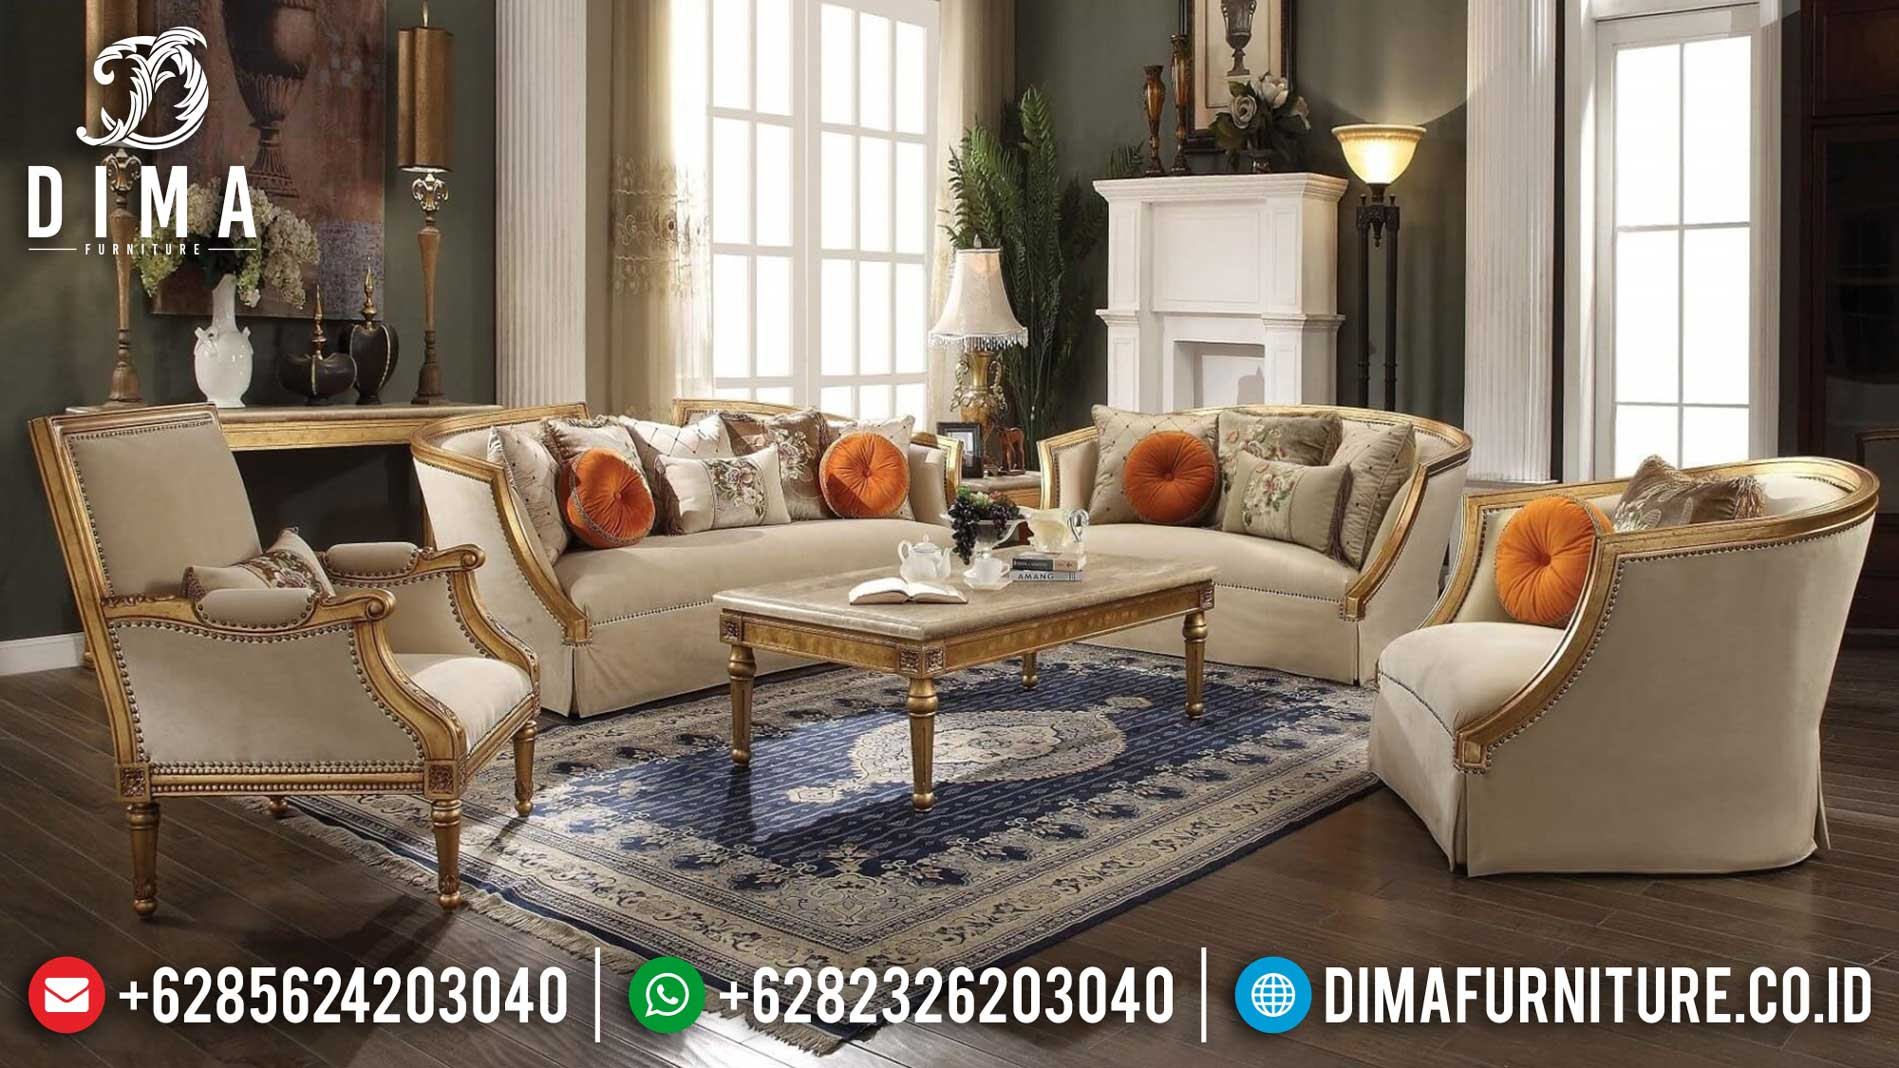 Jual Sofa Mewah Ruang Tamu Luxury Classic Golden Shine Color Best Mebel Jepara TTJ-1256